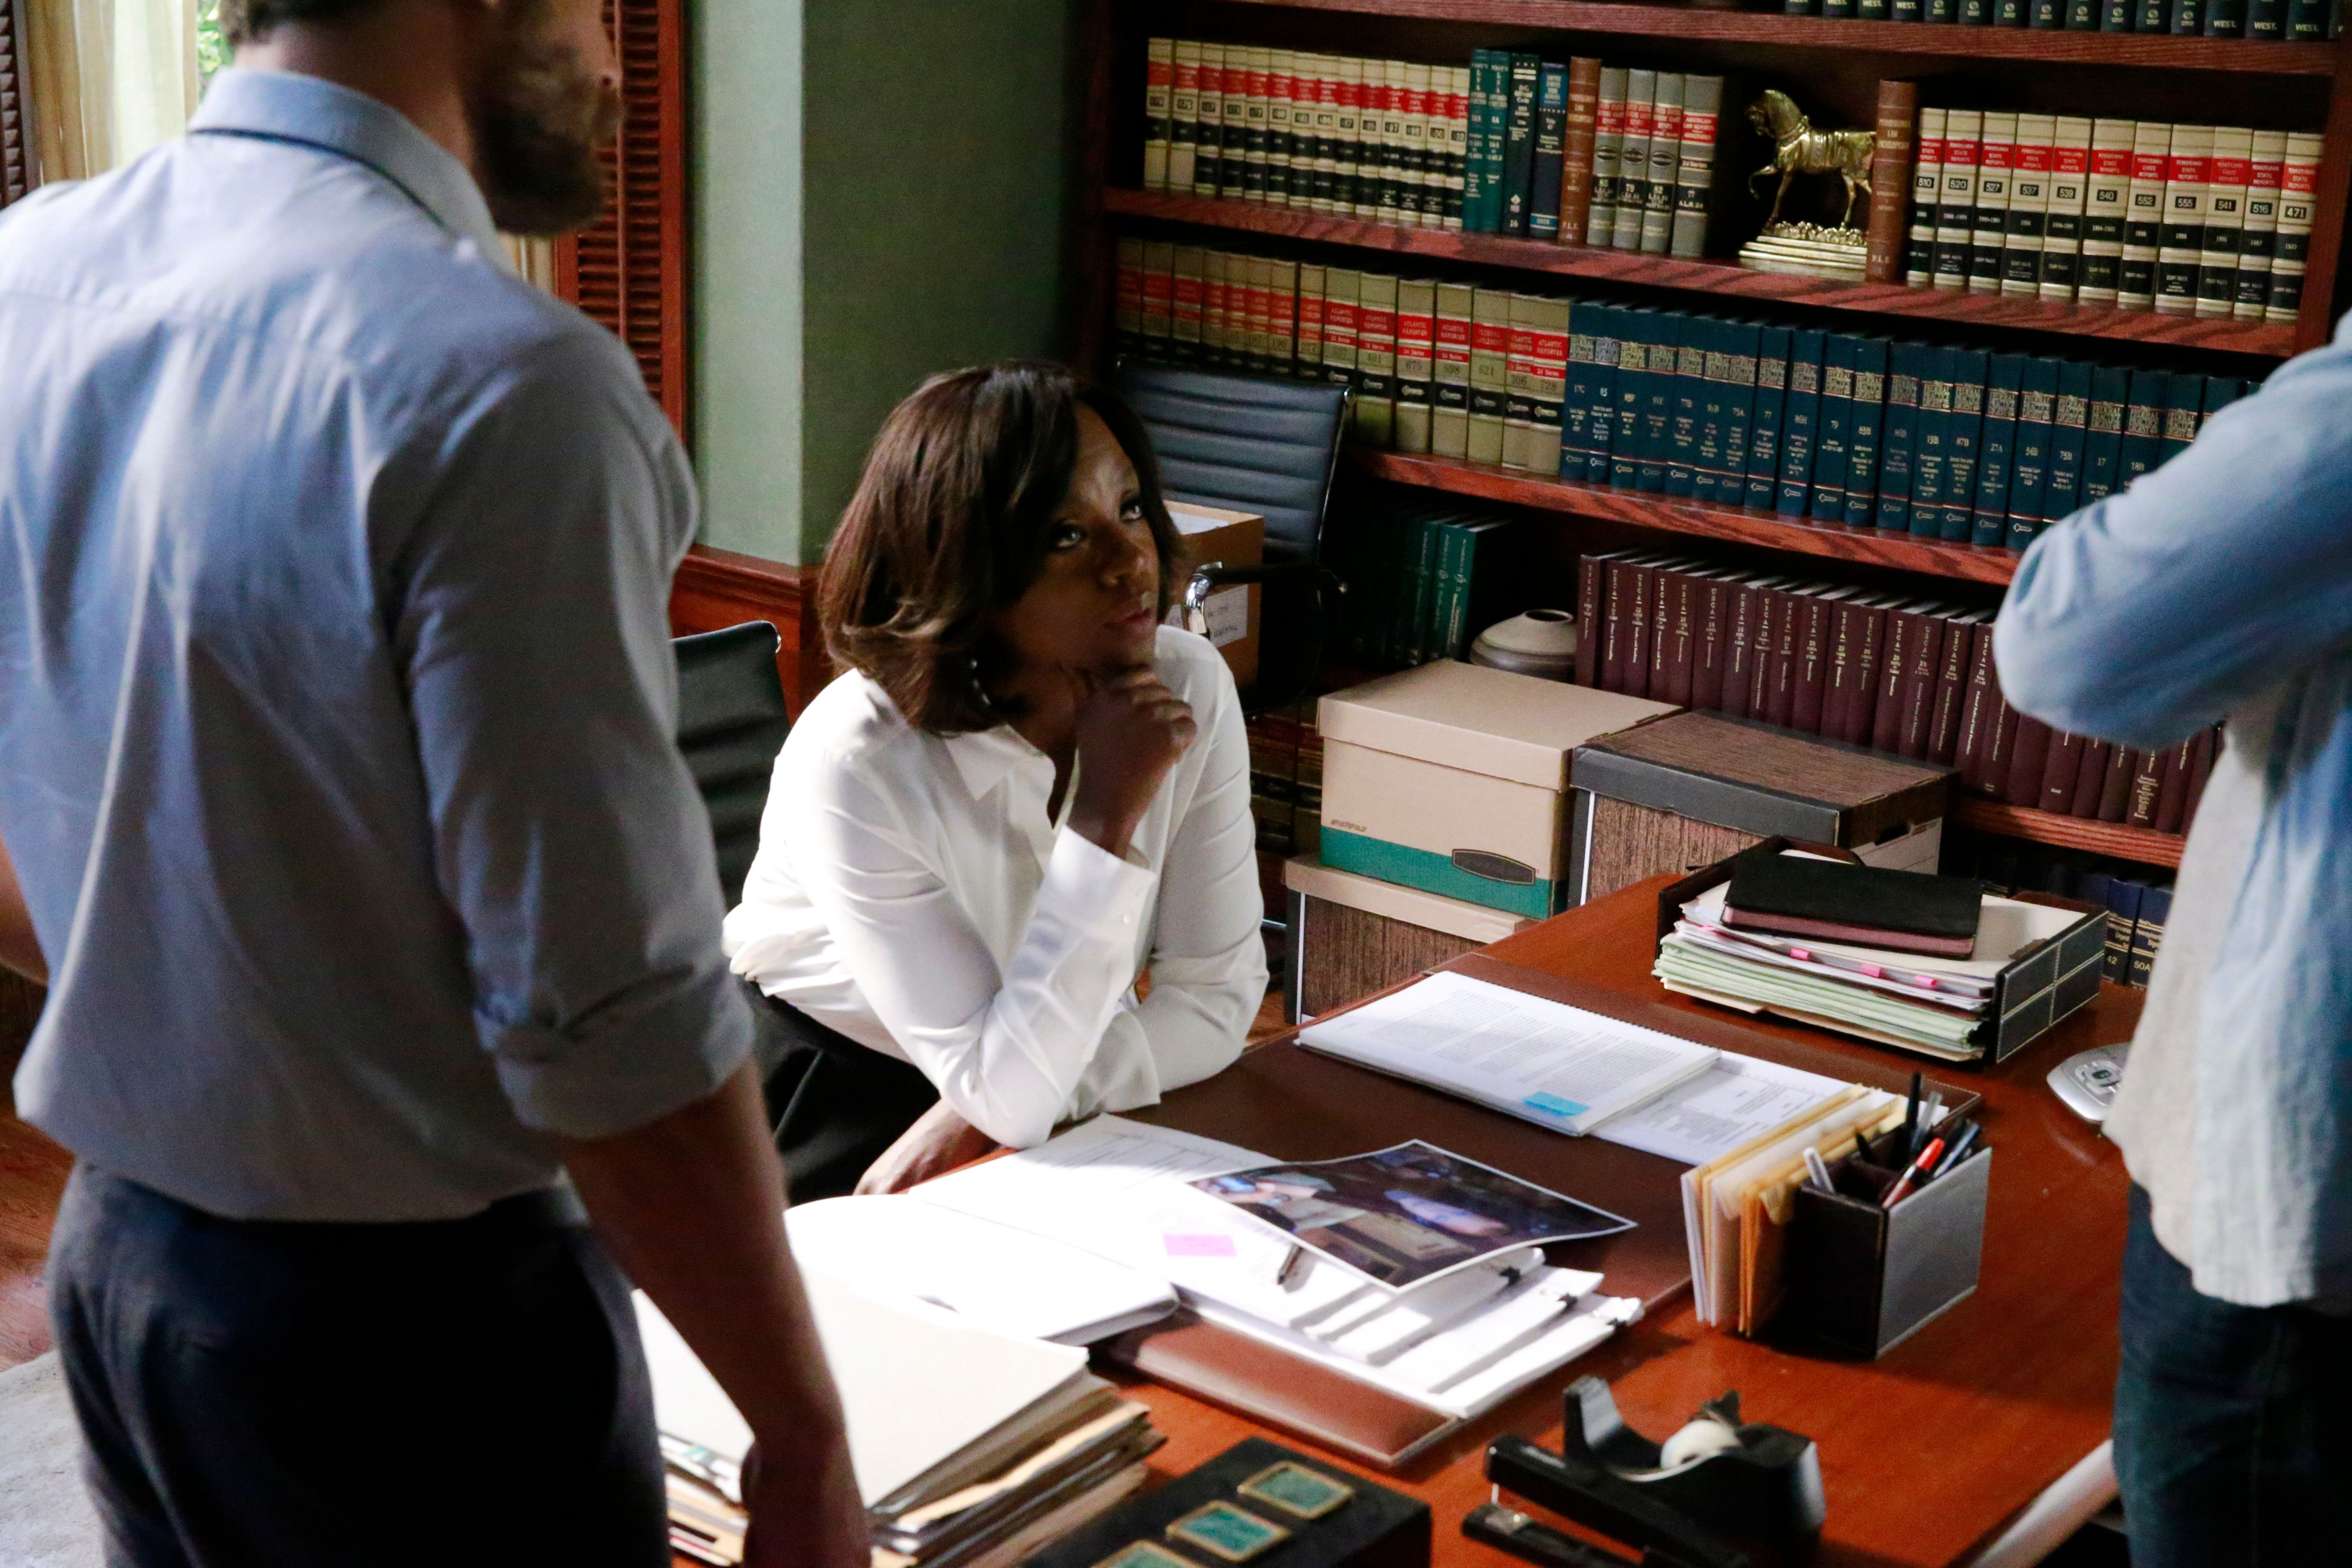 HOW TO GET AWAY WITH MURDER - 'What Did We Do?' - ADA Sinclair discovers a break in her favor in the Hapstall case, but her actions result in a deadly outcome as details are revealed about the night Annalise was shot, including the person responsible for pulling the trigger, on the winter finale of  'How to Get Away with Murder,' THURSDAY, NOVEMBER 19 (10:00-11:00 p.m., ET) on the ABC Television Network. (Photo by Mitch Haaseth/ABC via Getty Images)